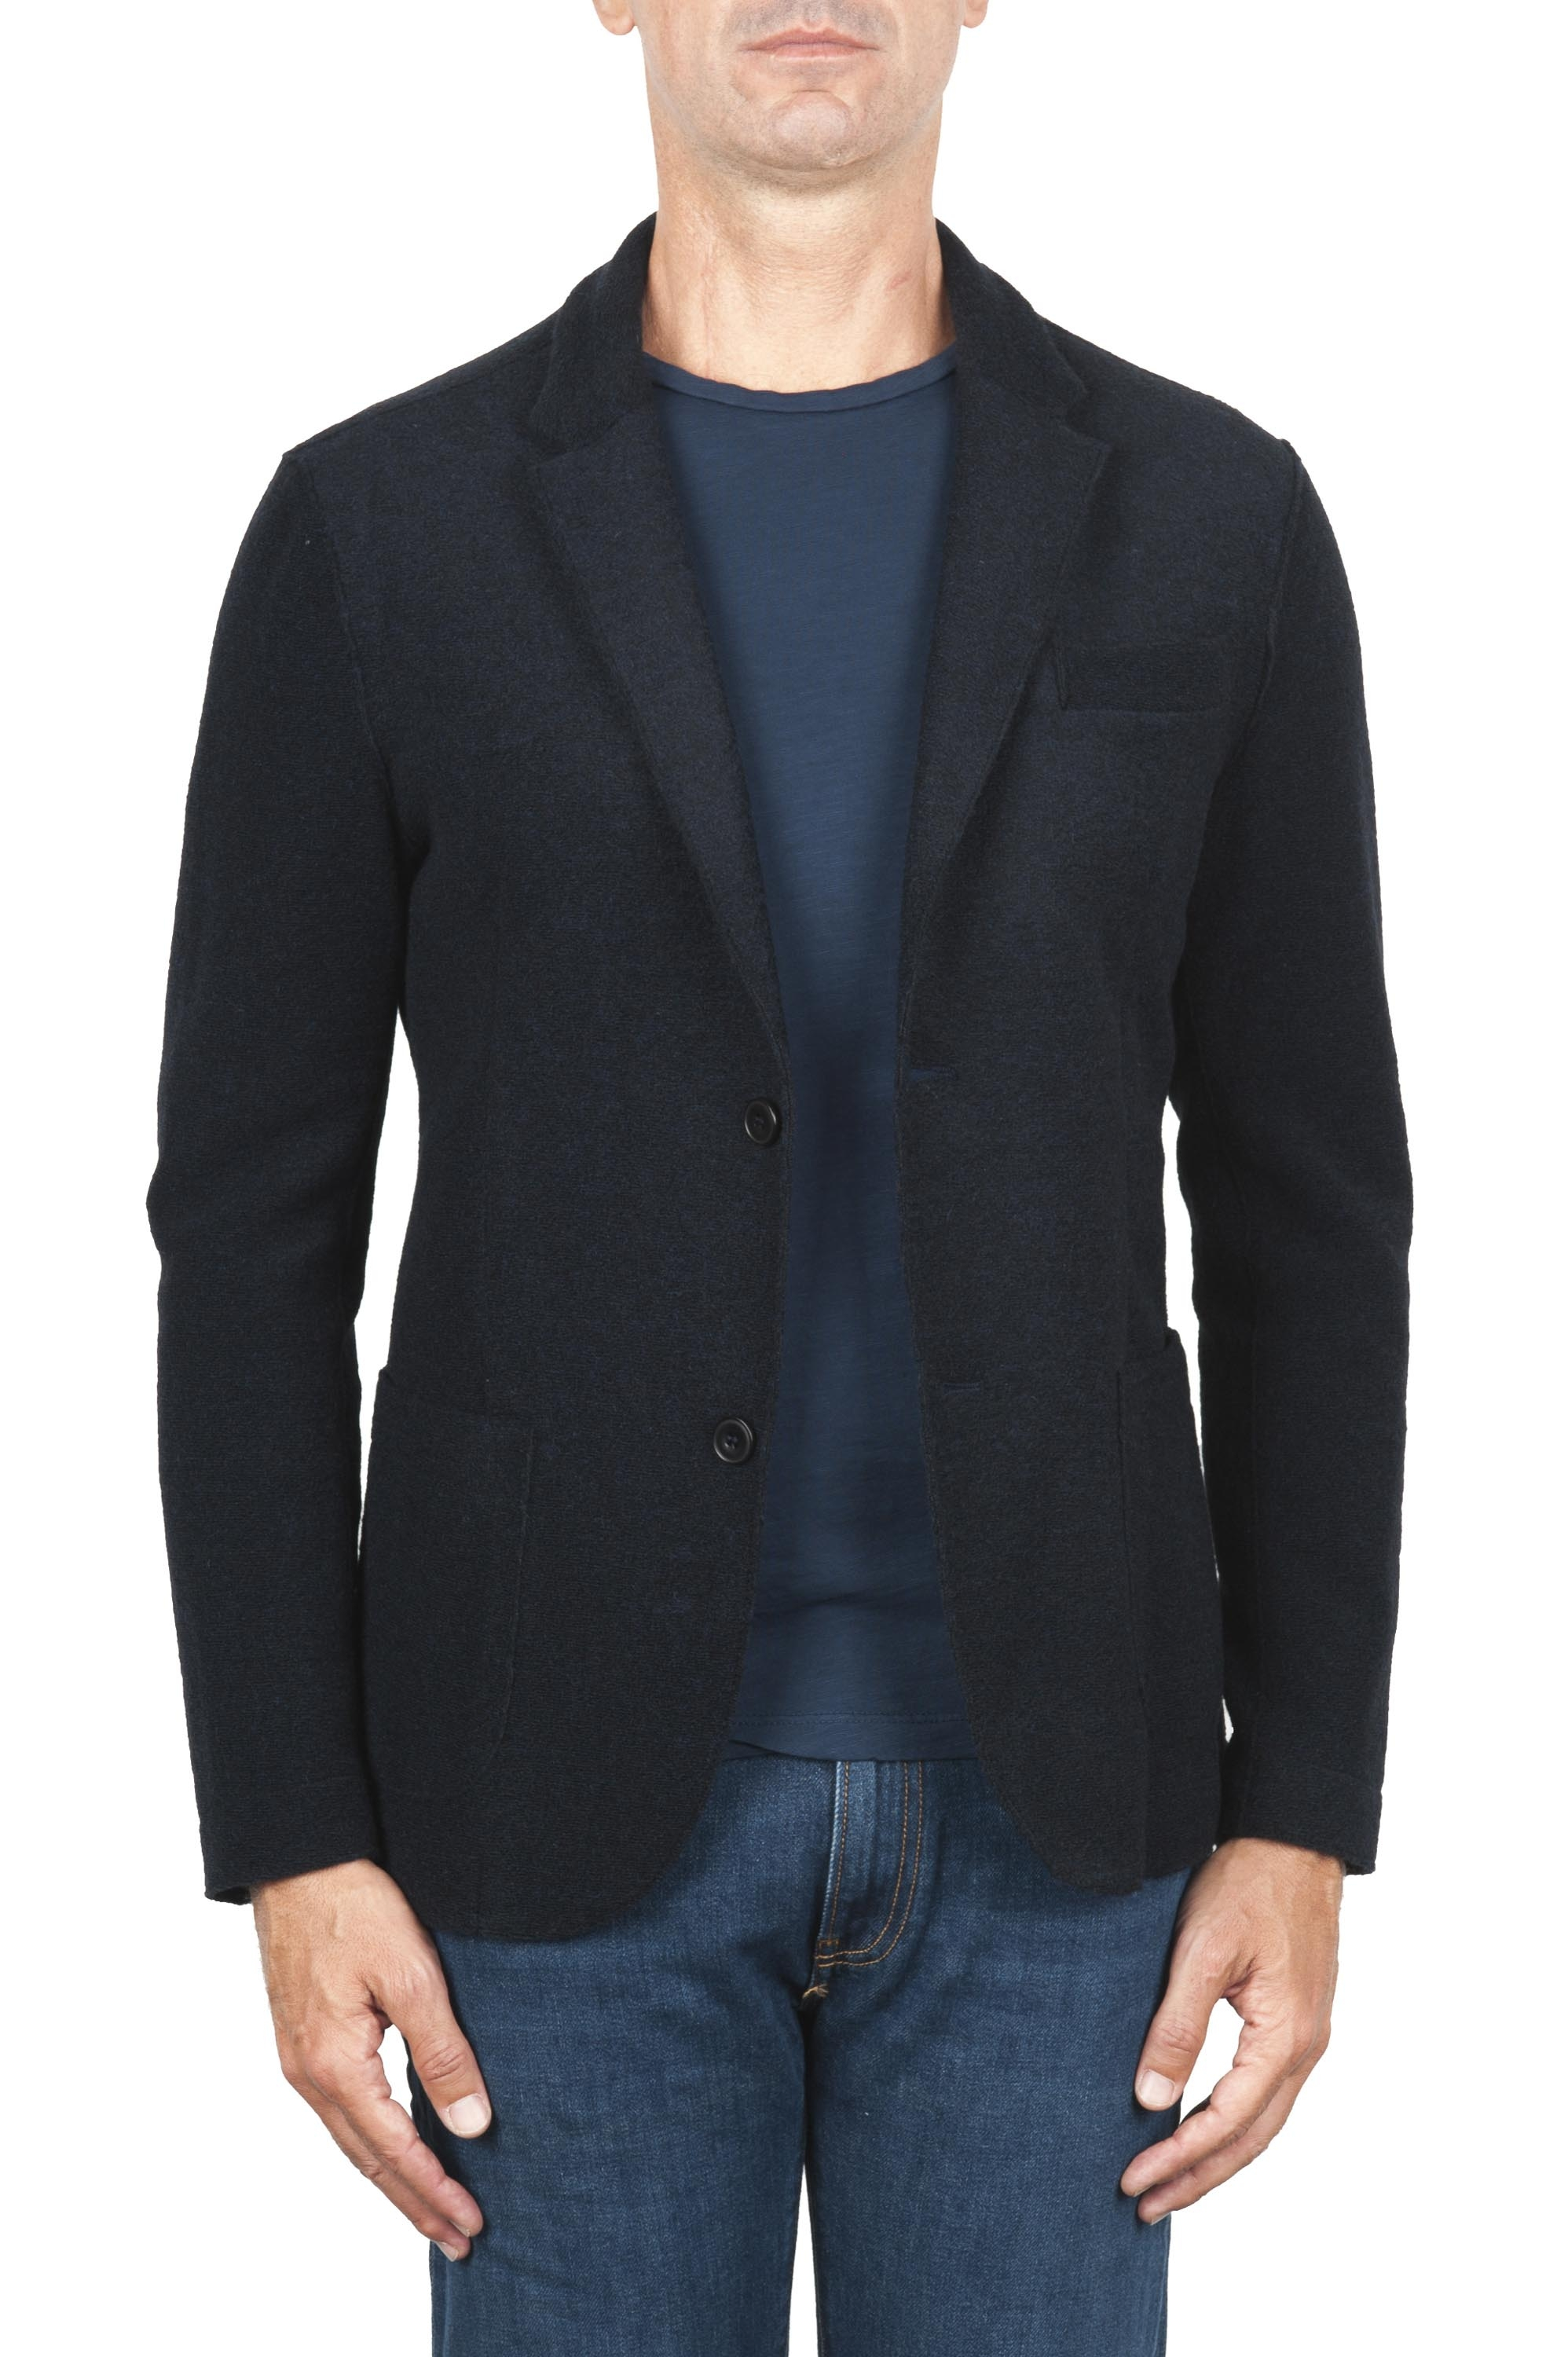 SBU 01334 Wool blend sport jacket unconstructed and unlined 01